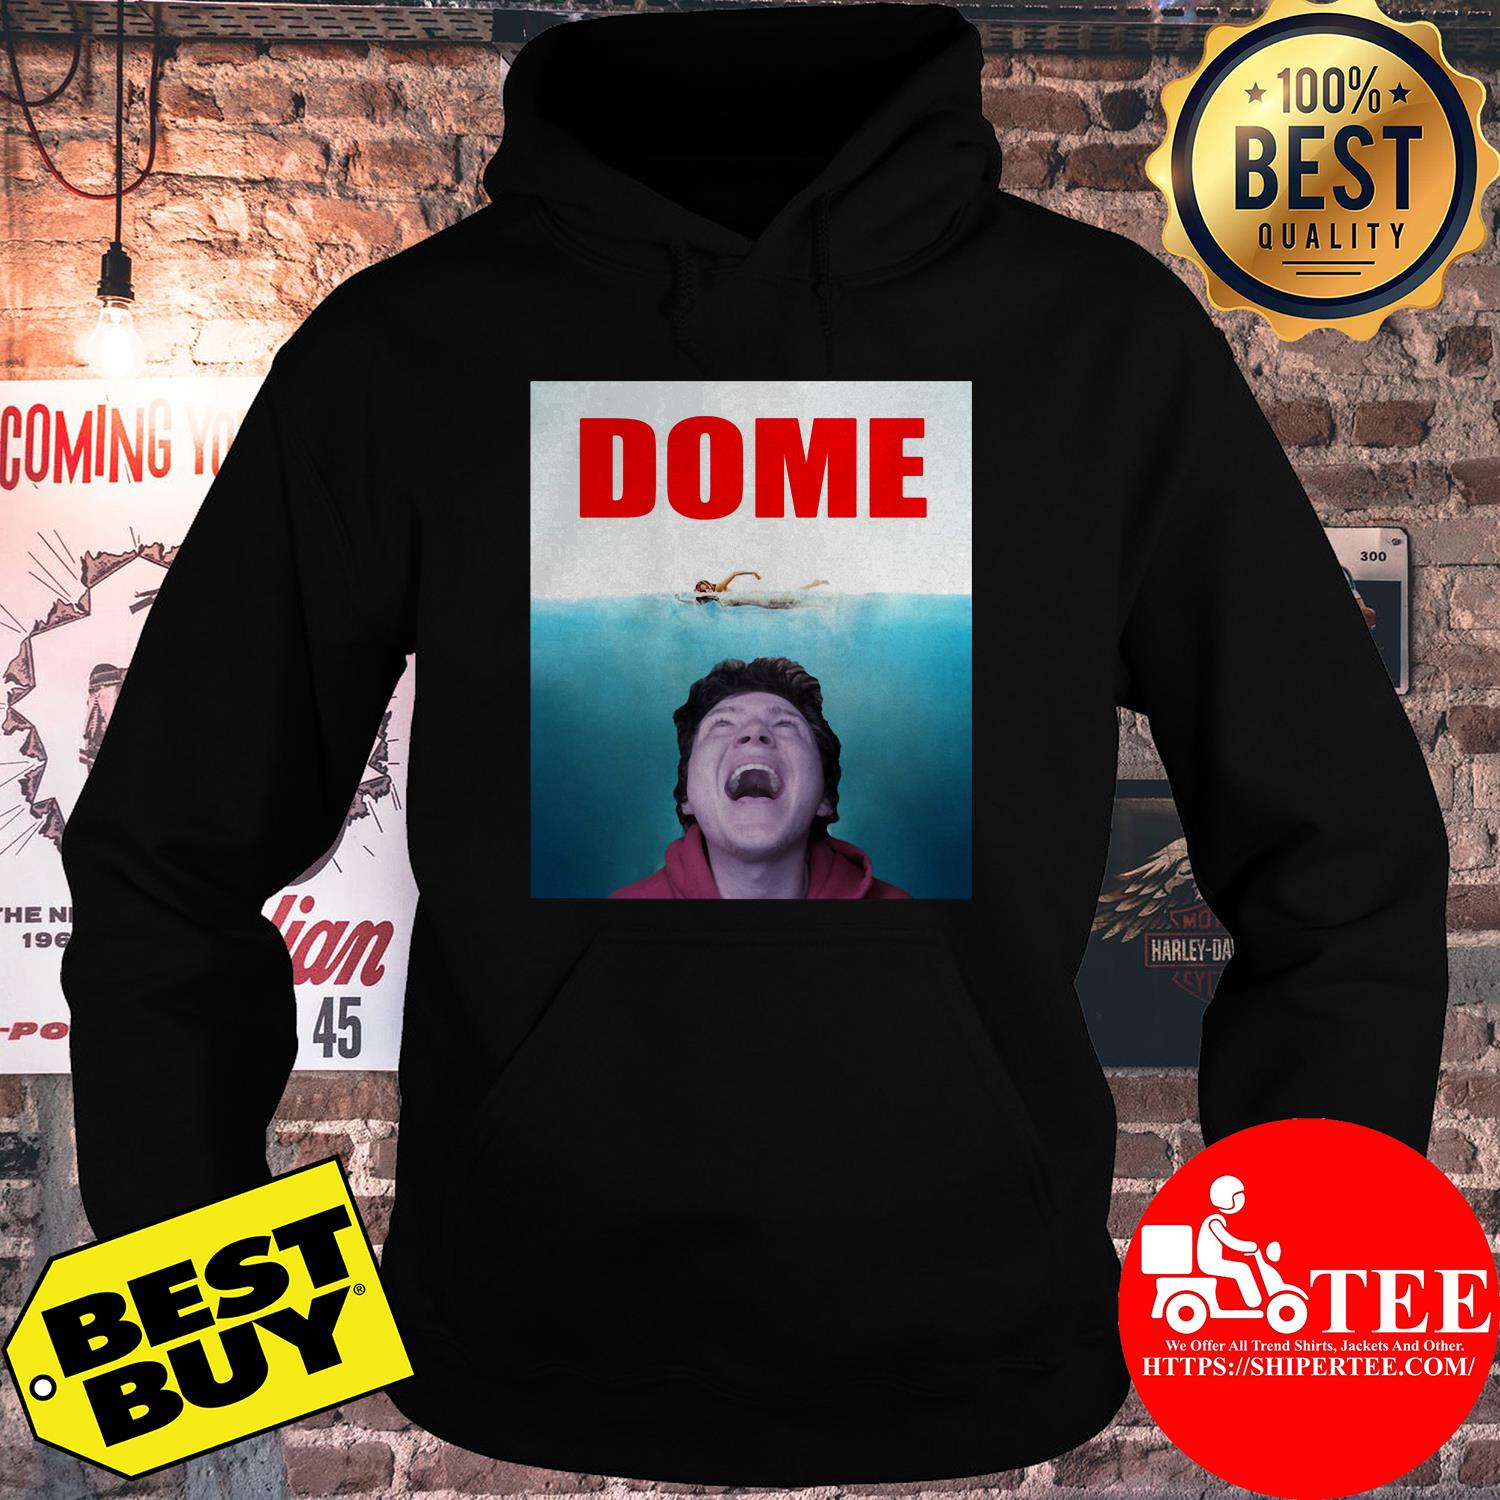 DOME Kids Shirt Shallow On Storyfire Kids hoodie